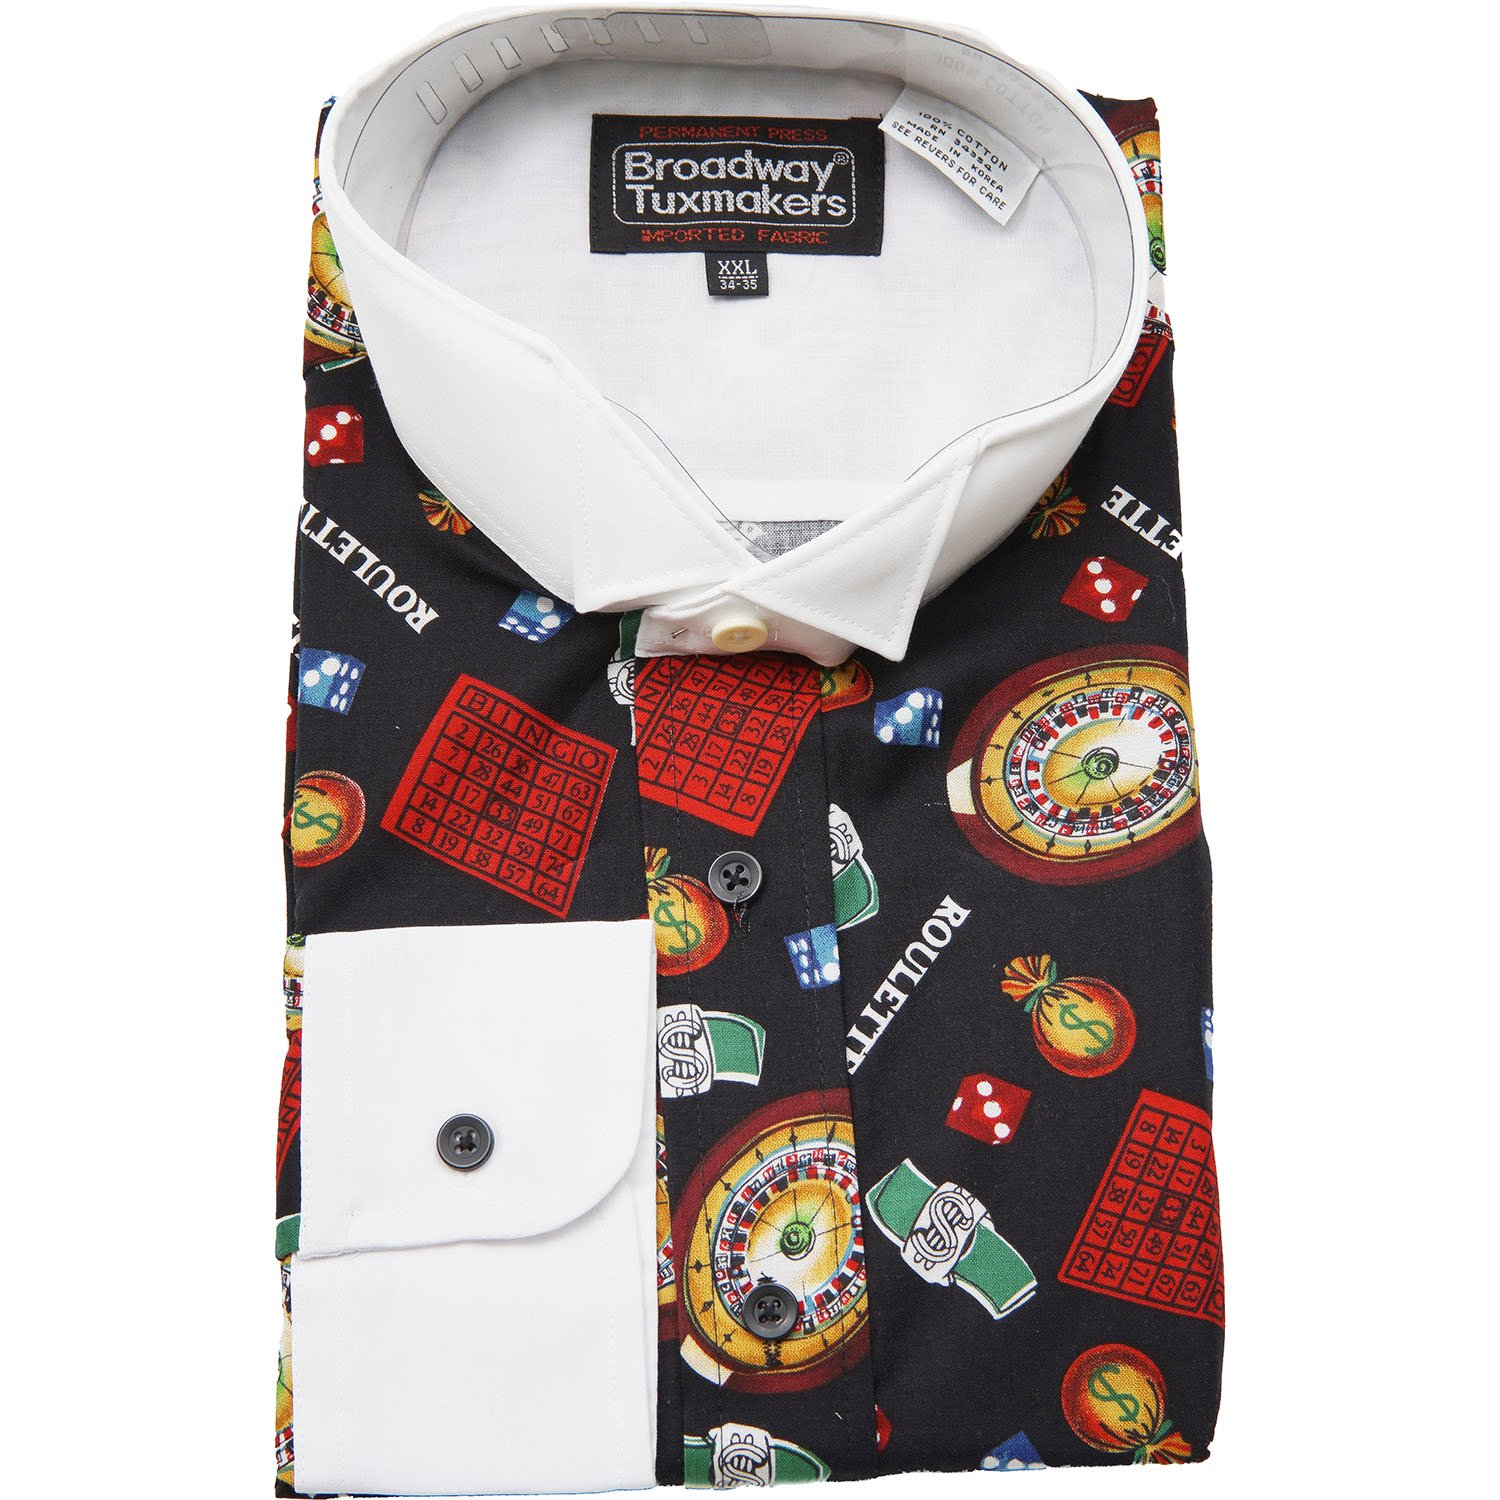 New Era Factory Outlet Men's Wing Tip Collar Casino Roulette Print Tuxedo Shirt